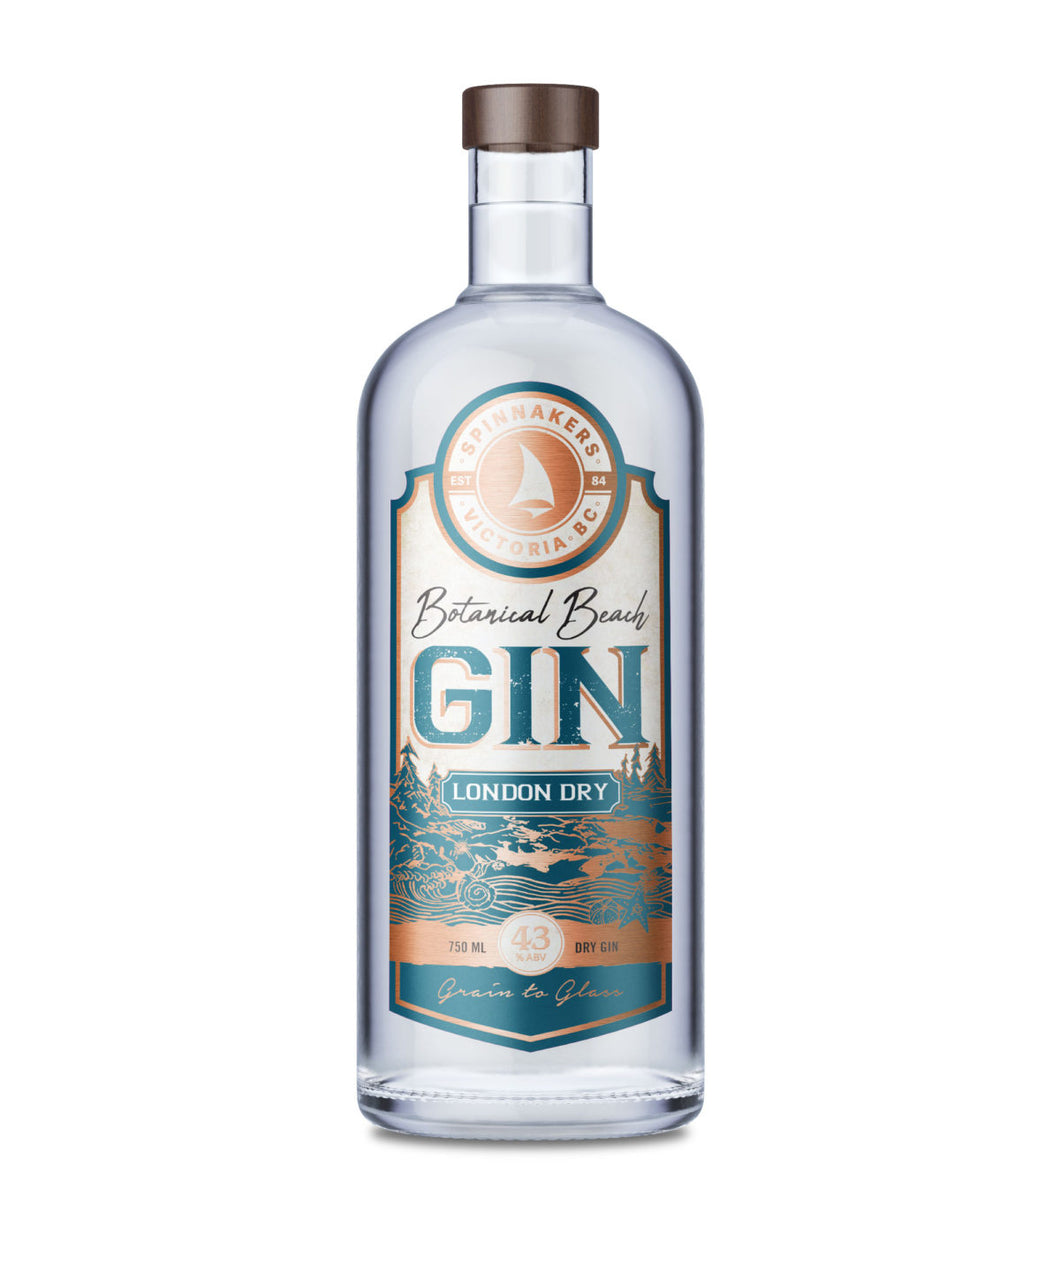 Spinnakers Botanical Beach London Dry Gin 750 ml